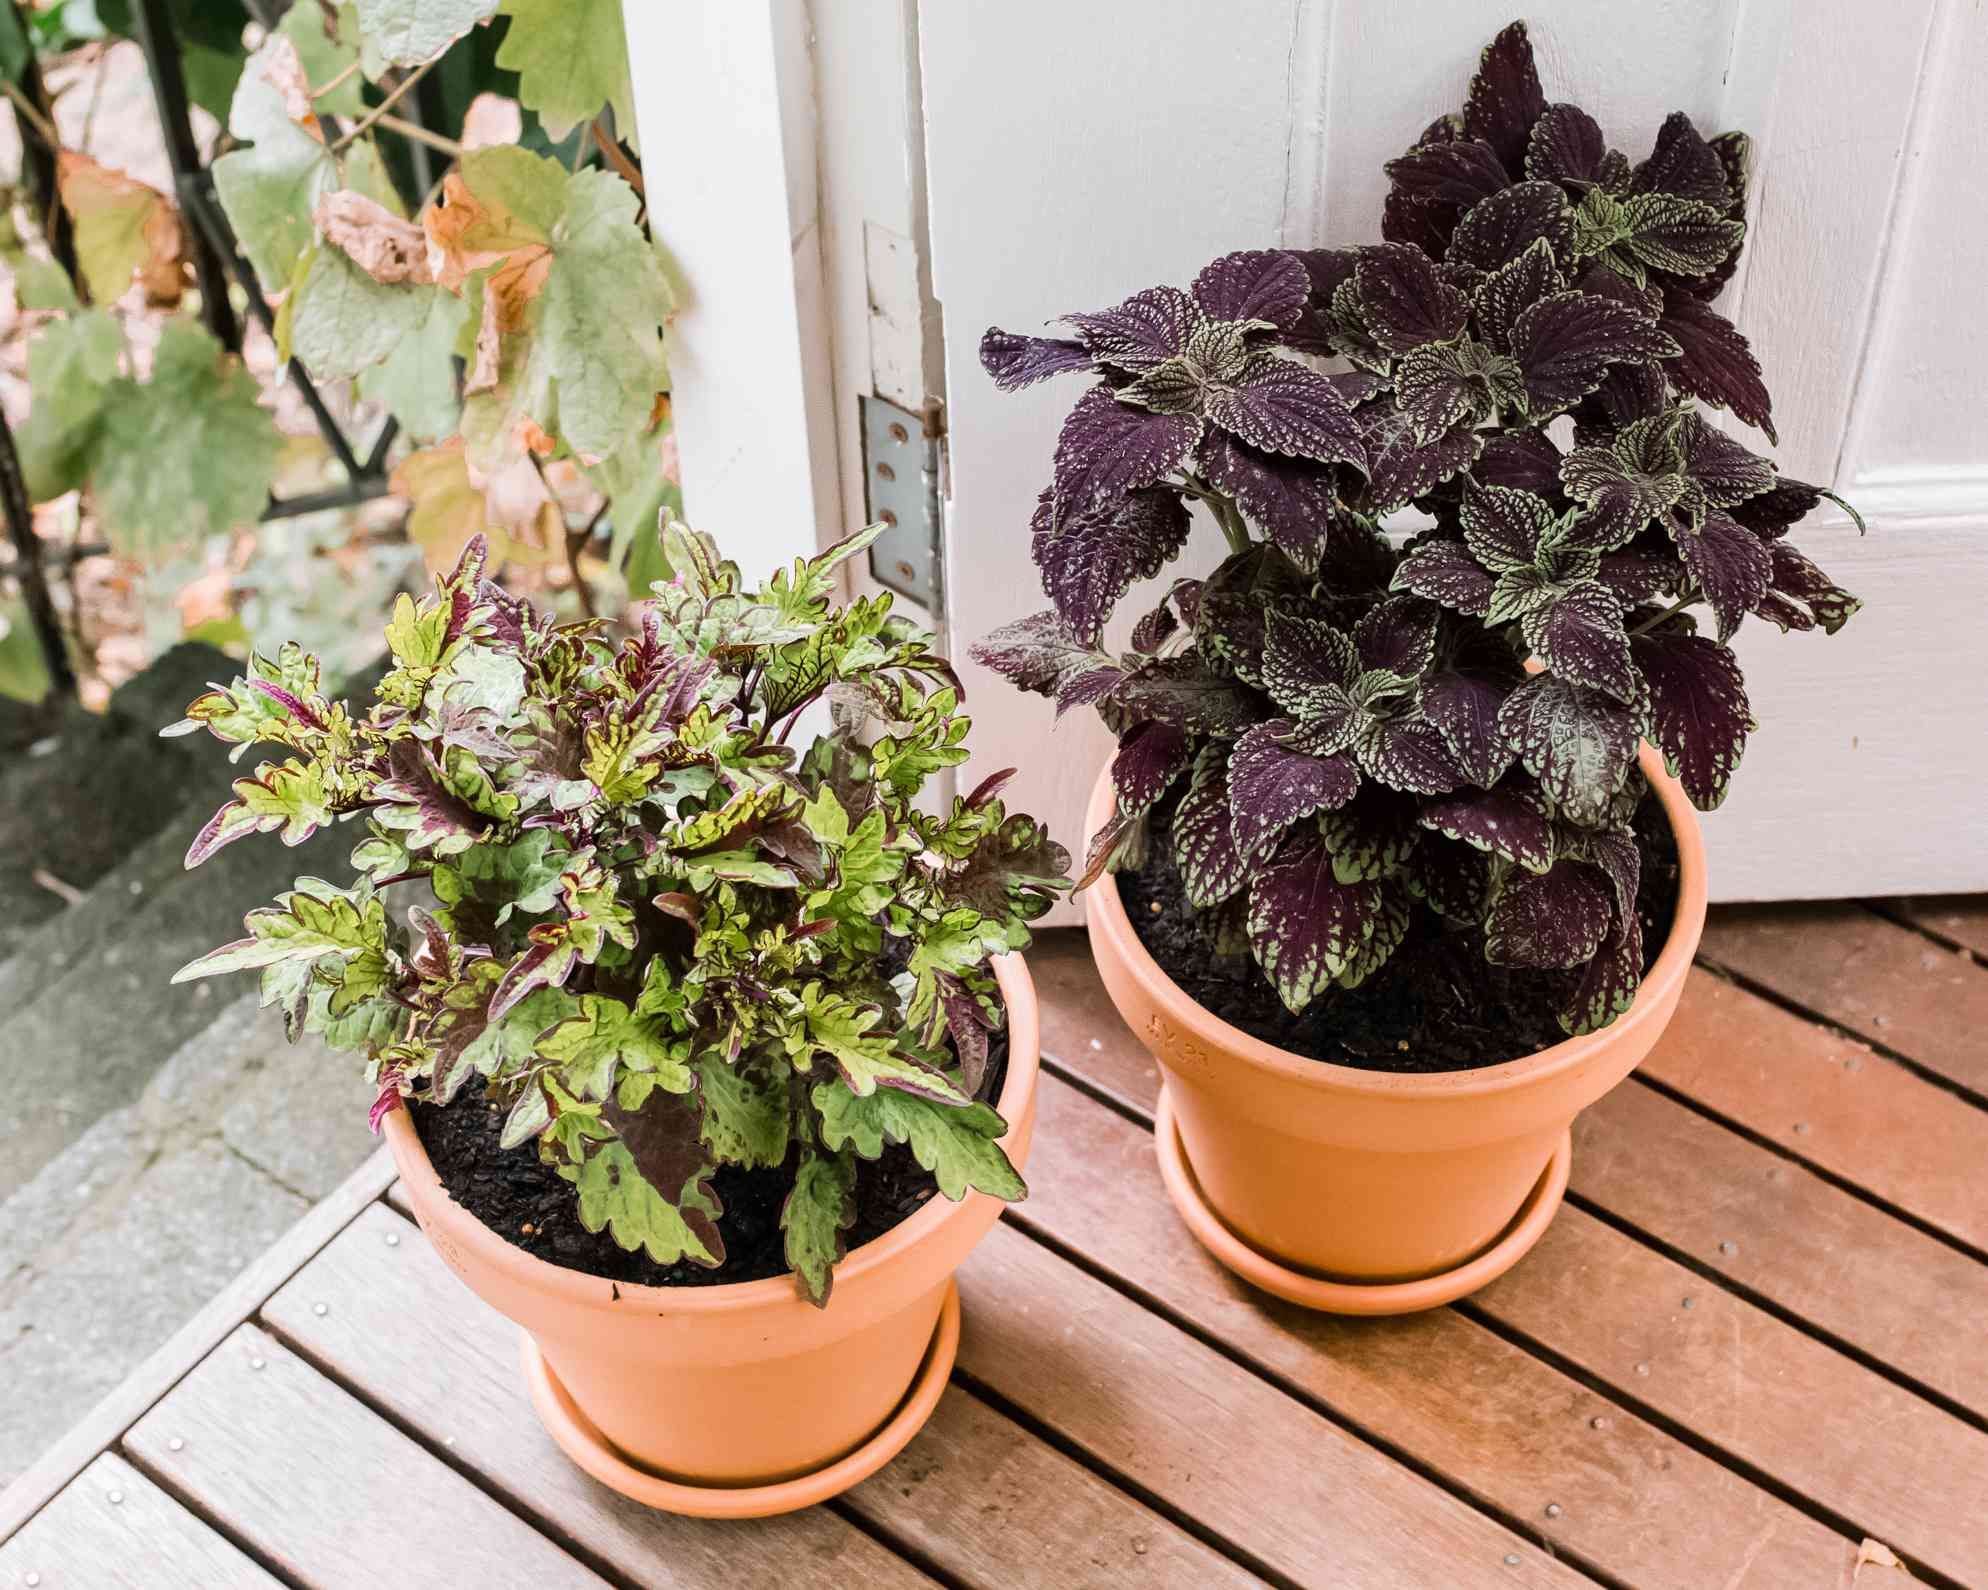 different varieties of coleus plants side by side